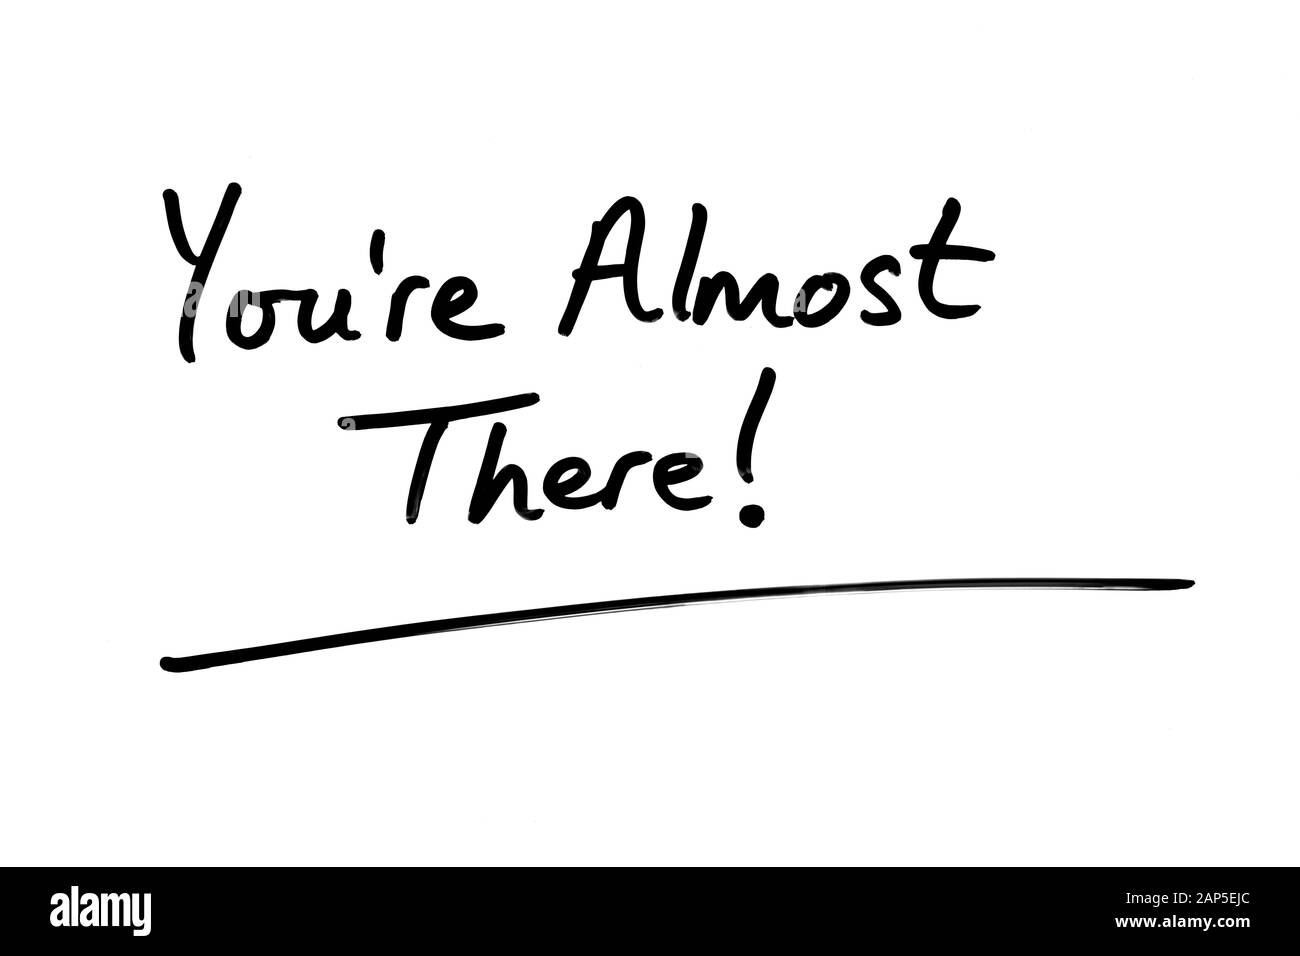 You're Almost There! handwritten on a white background. Stock Photo